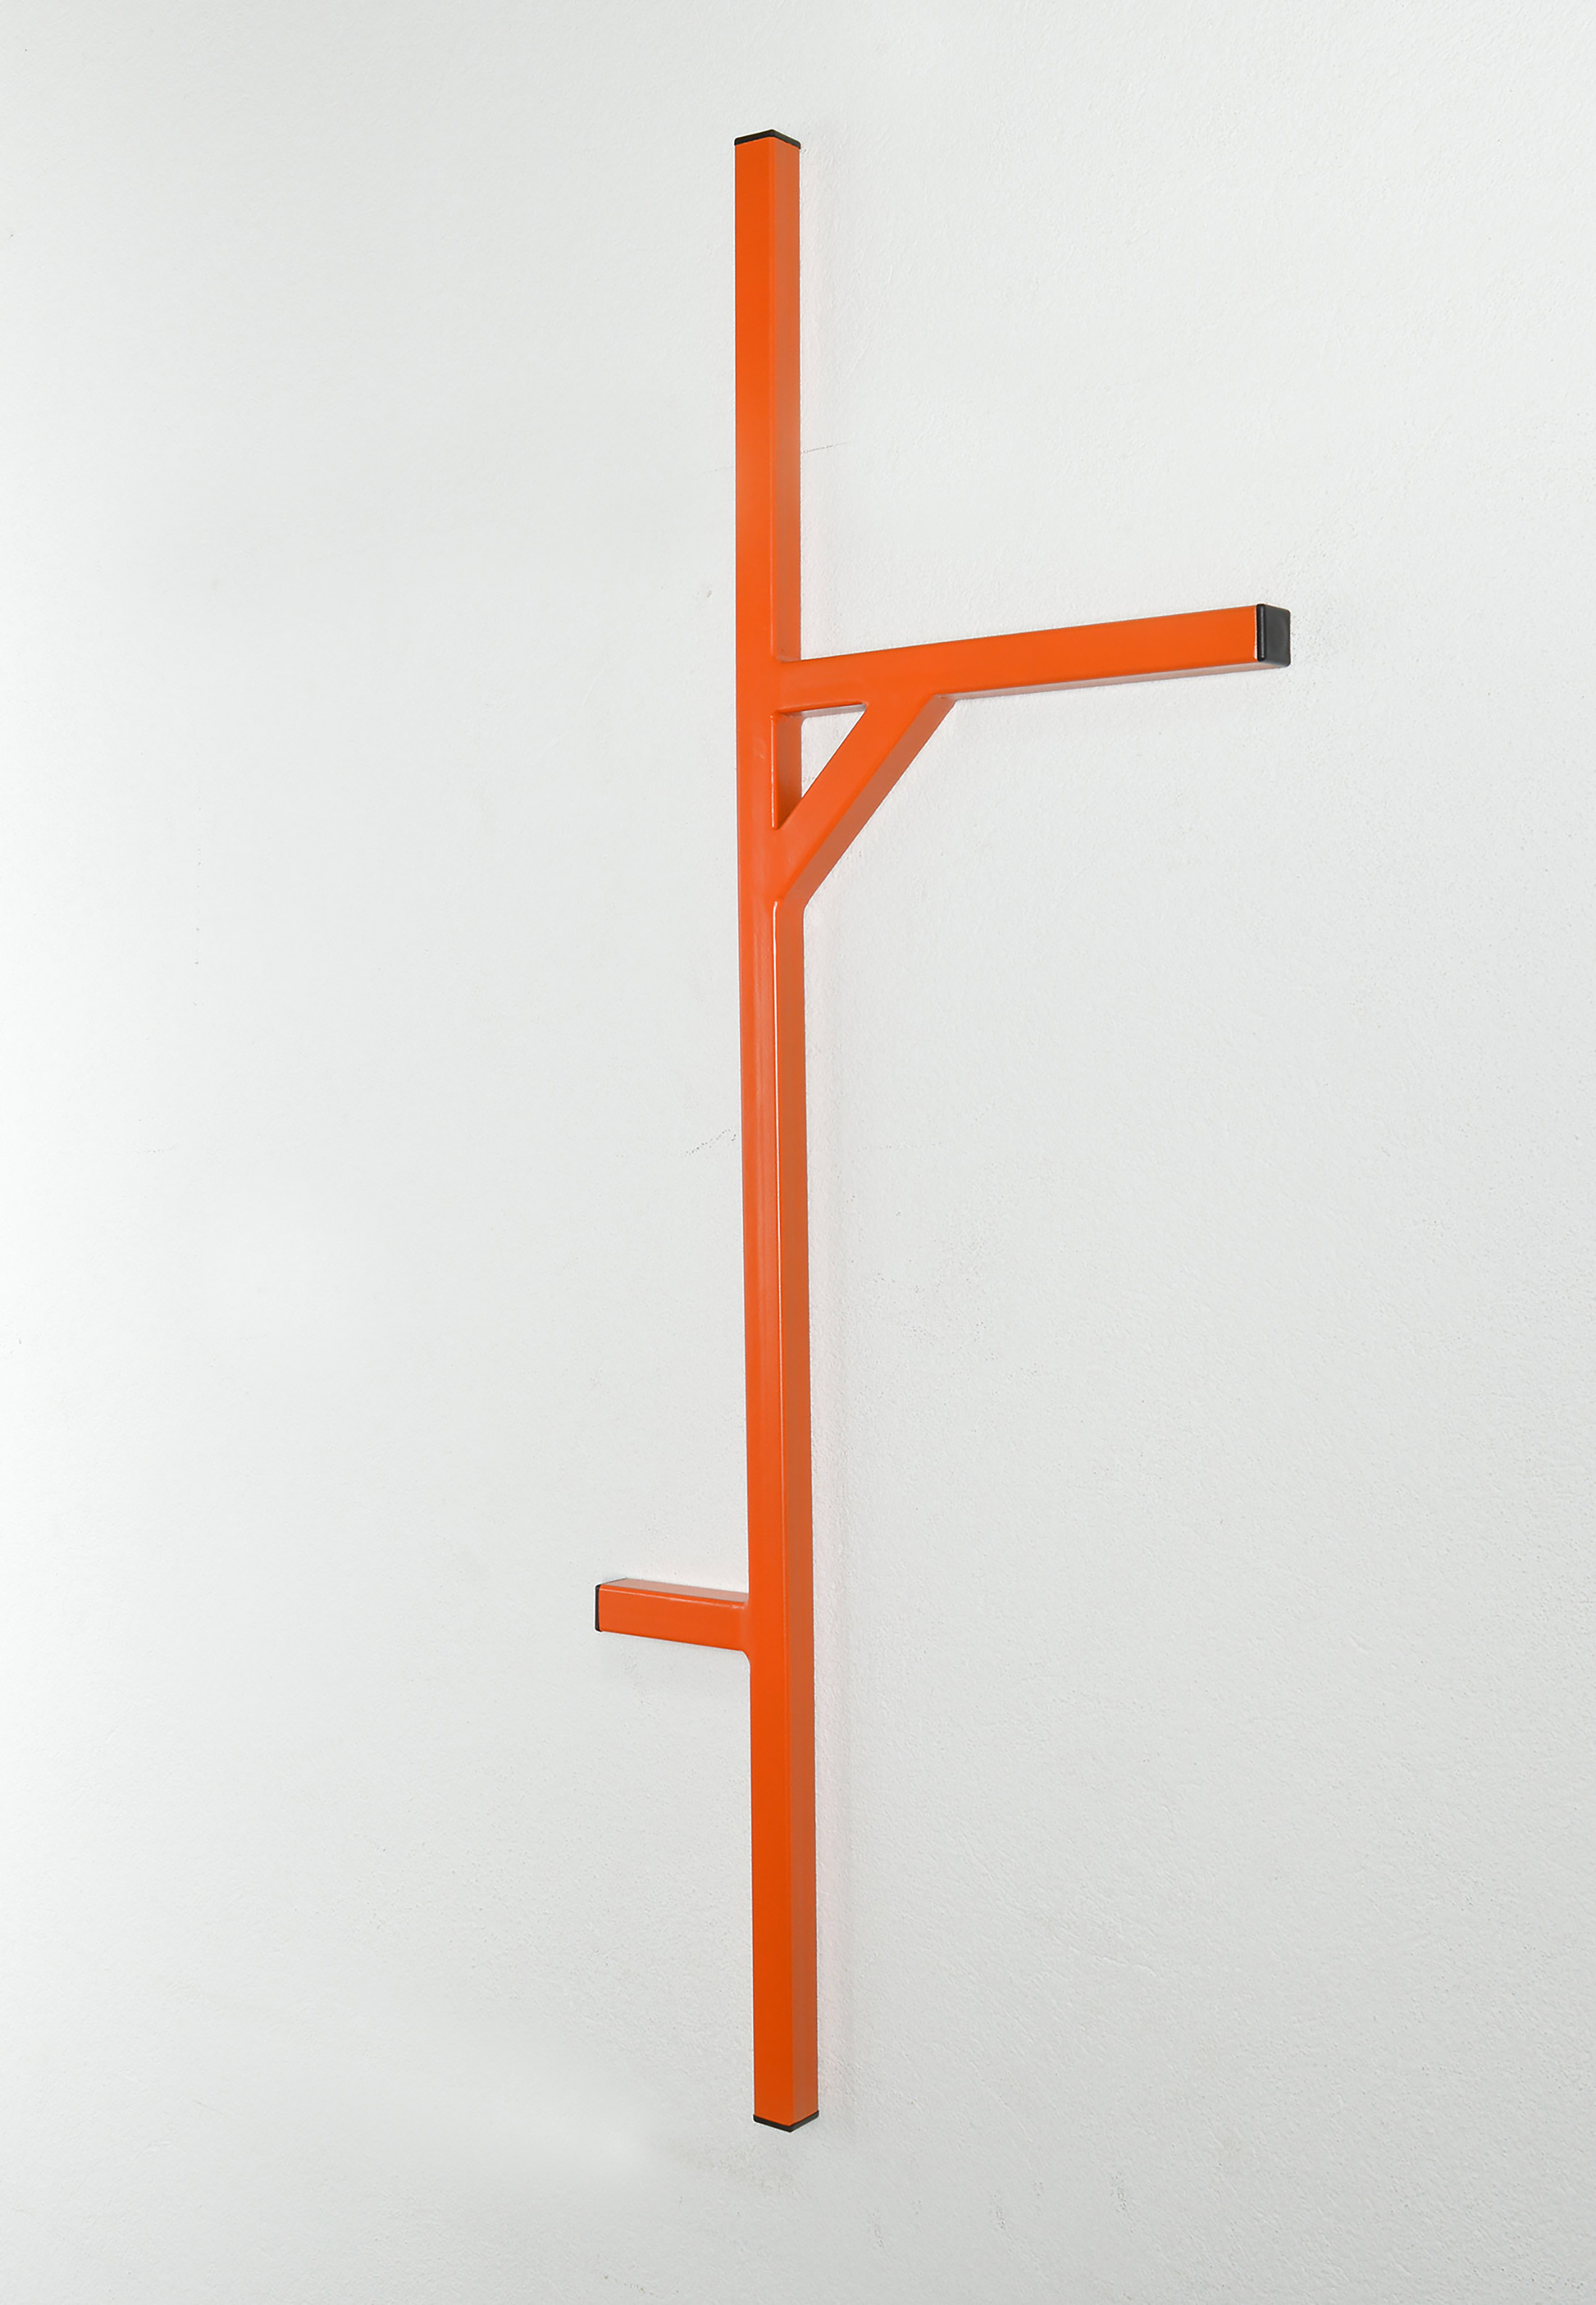 emanuel ehgartner, young contemporary artist, sculpture, steel, varnish, color, online art